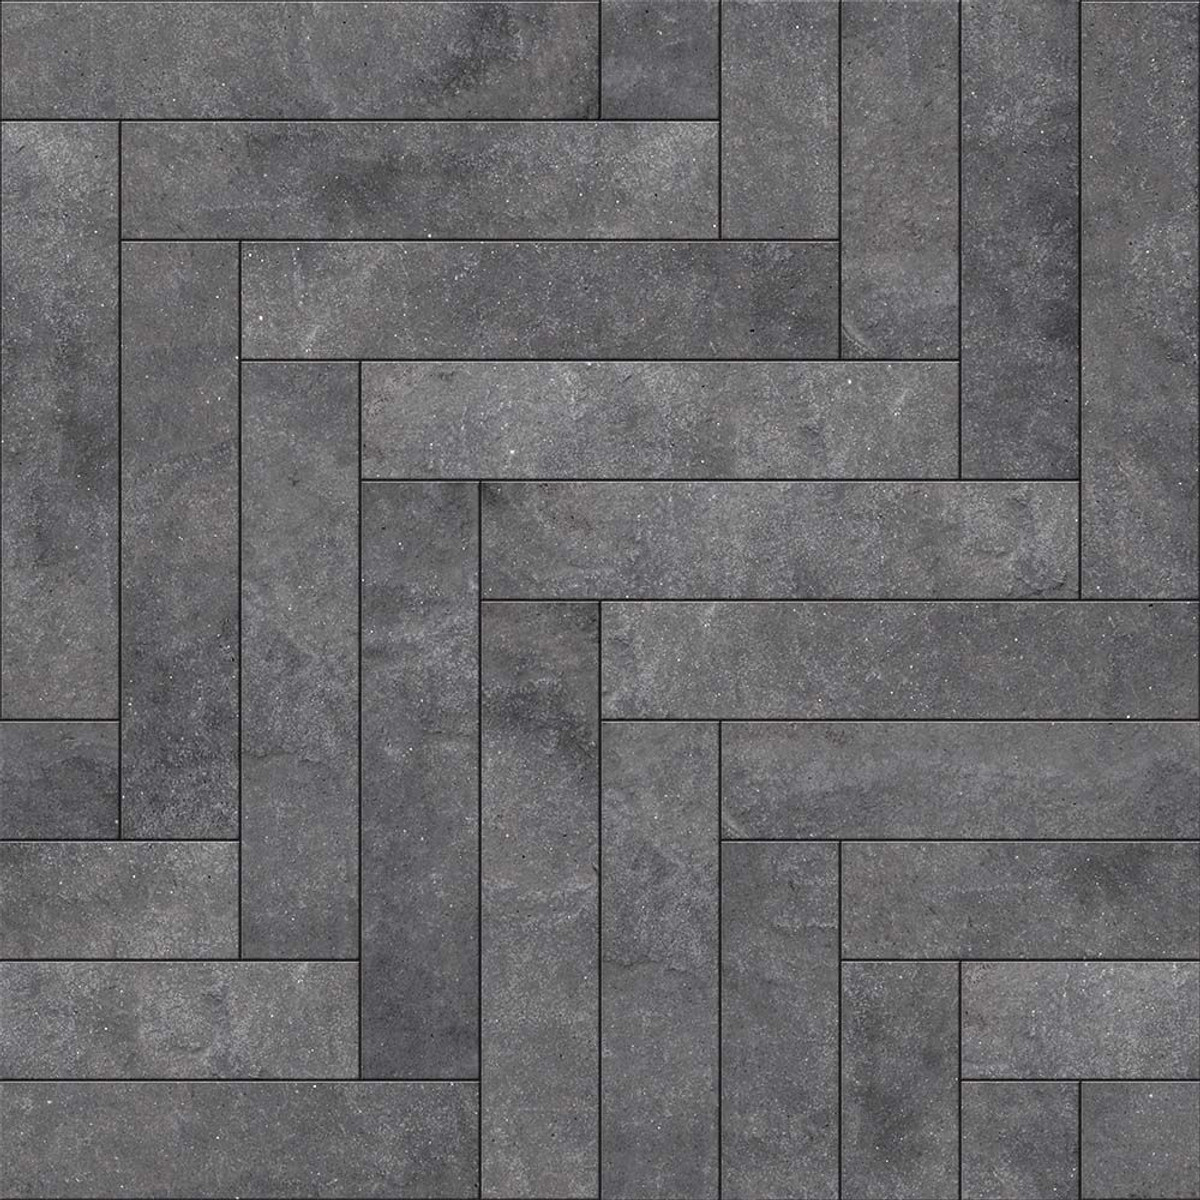 Beau Perfection Floor Tile Flexible Interlocking Tile In Chevron Blackstone ...